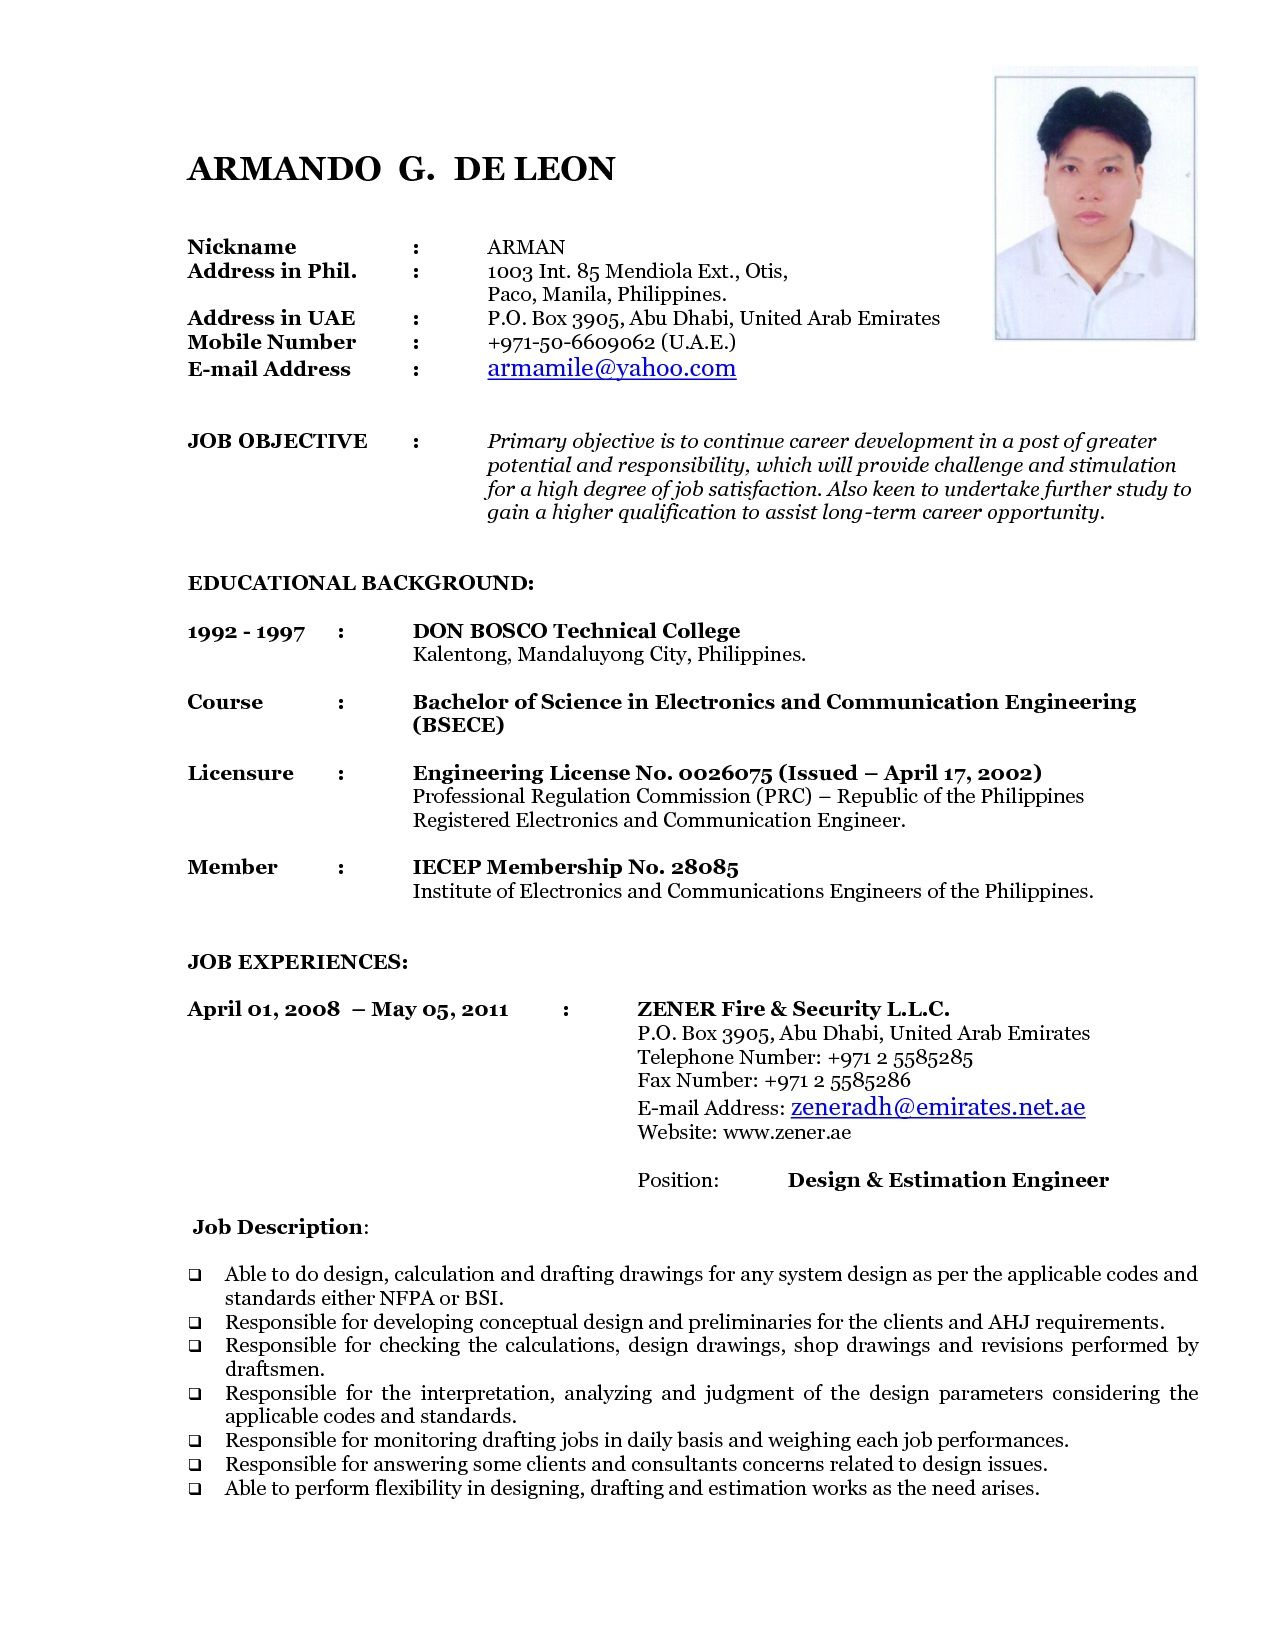 Resume Format For Applying Job In Dubai